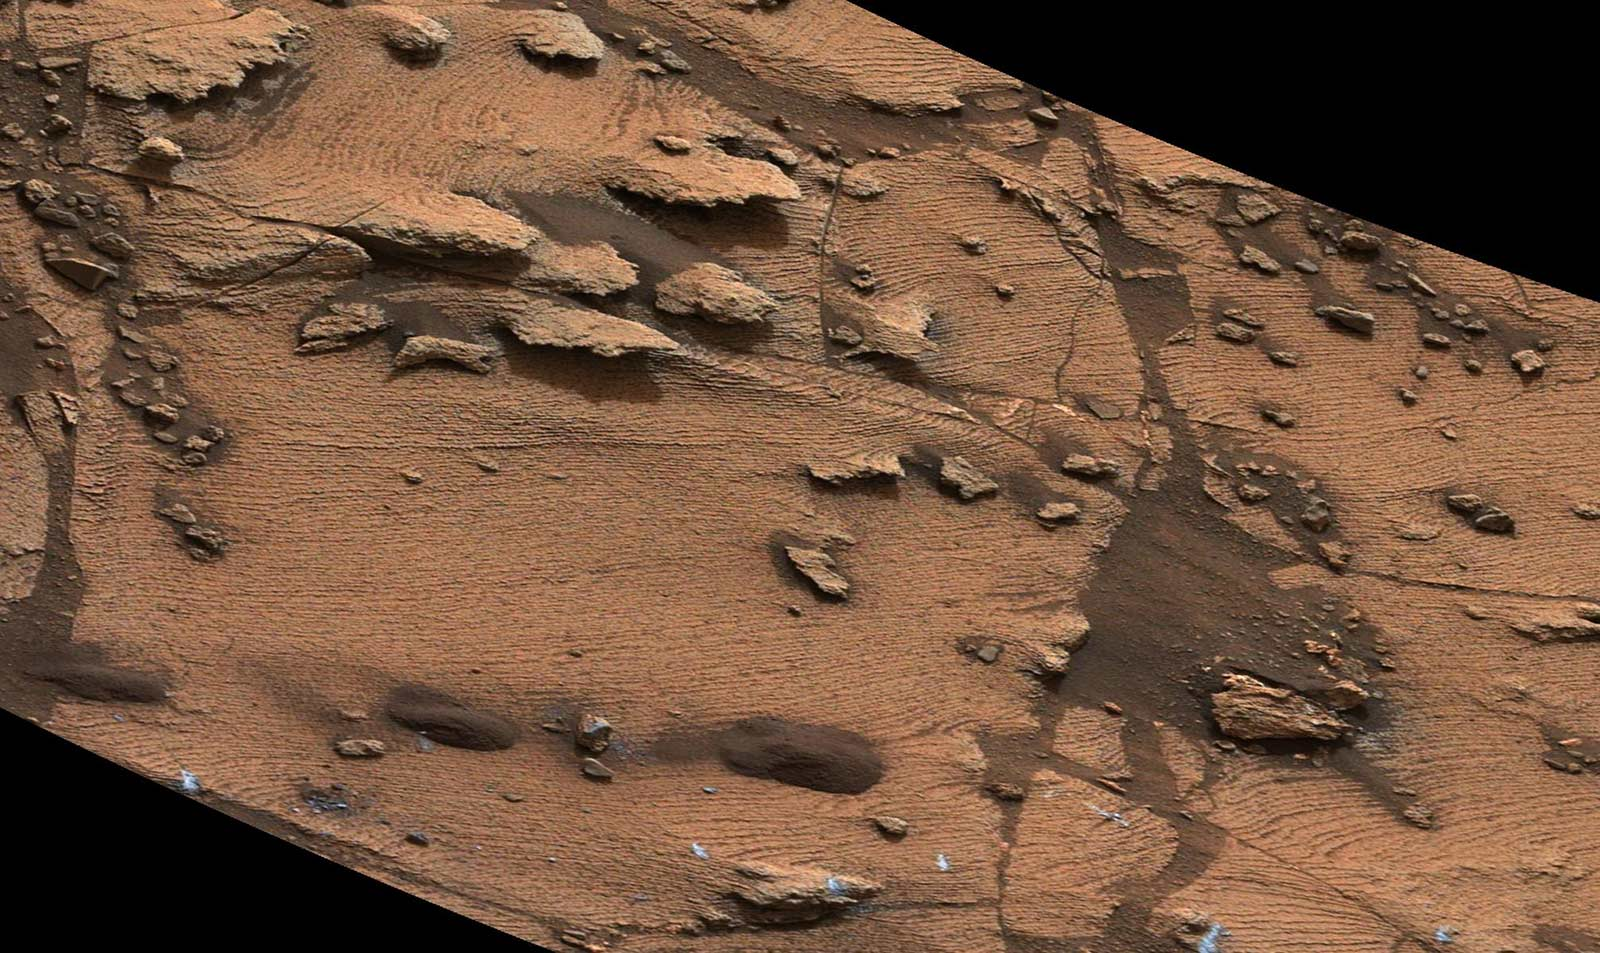 Sediment deposition on Mars